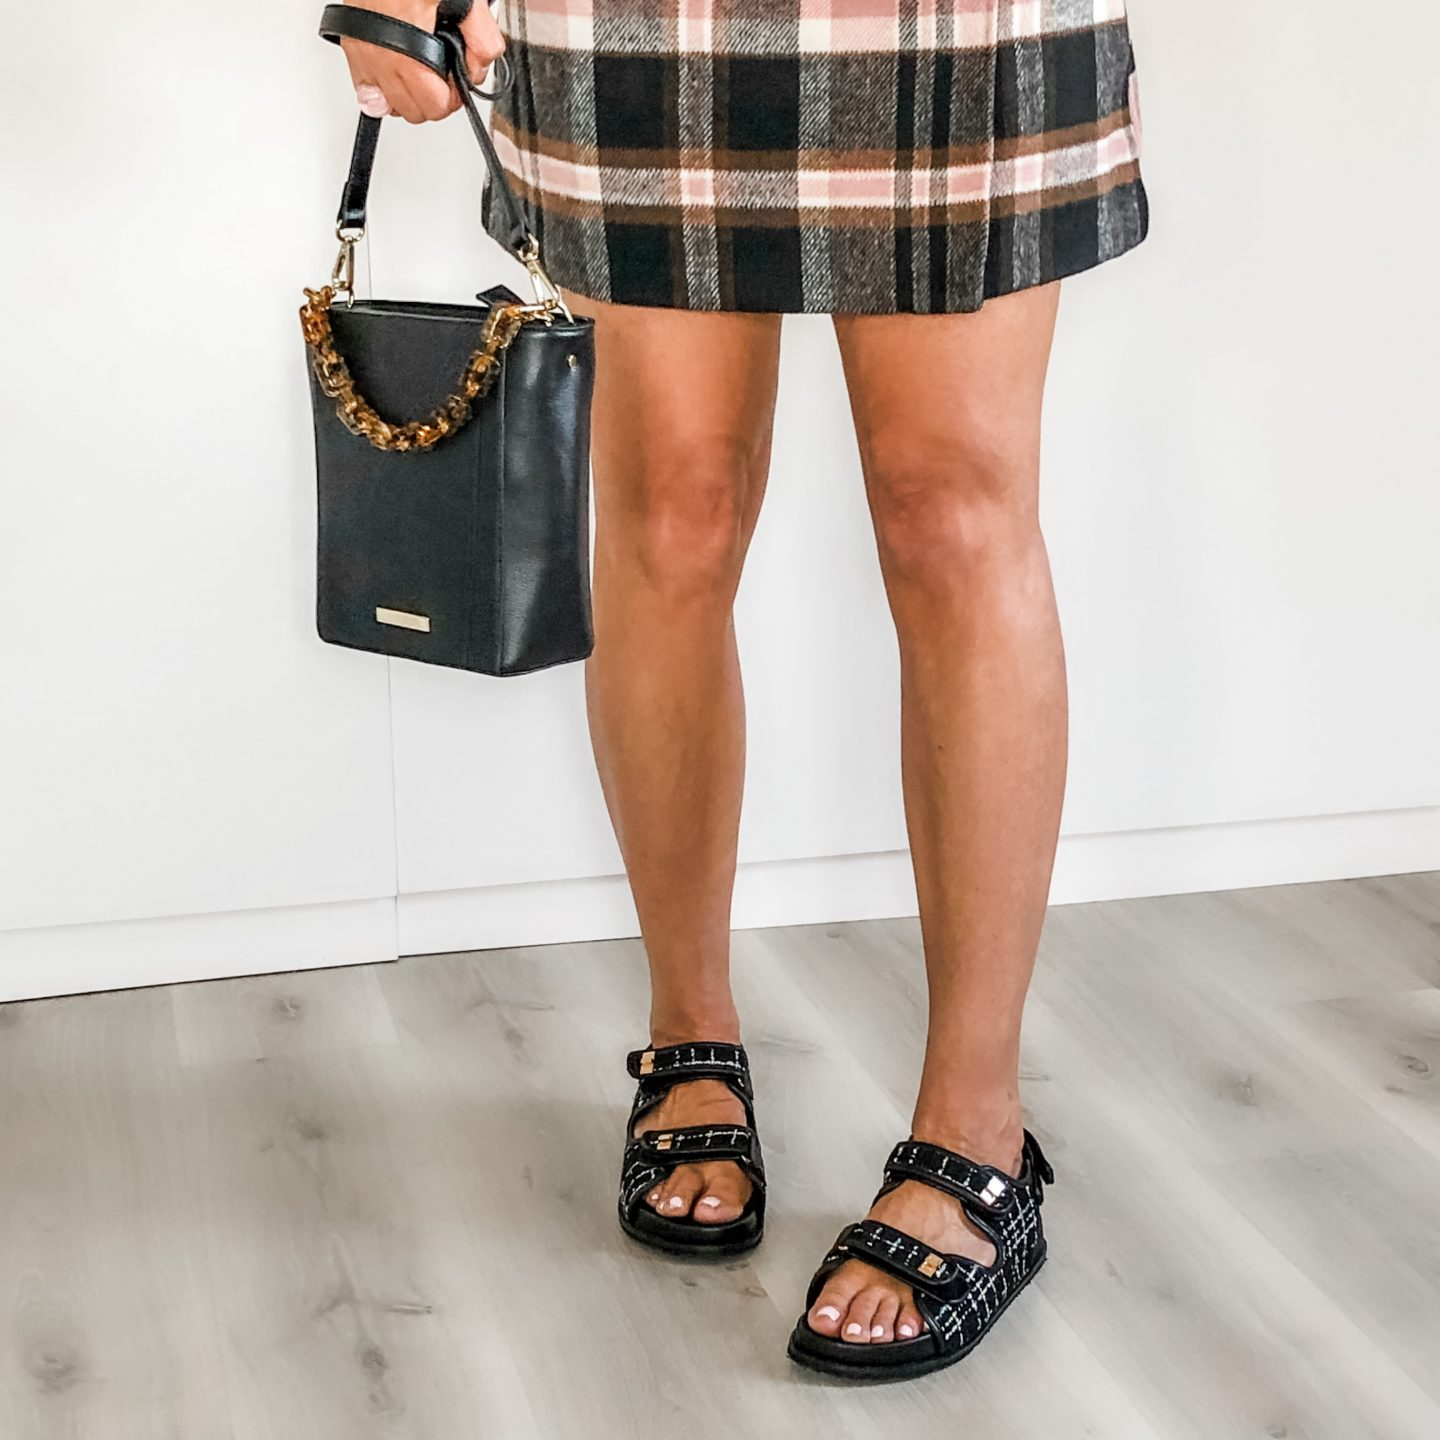 GRANDAD SANDALS – A GUIDE TO THE BEST CHANEL DUPES